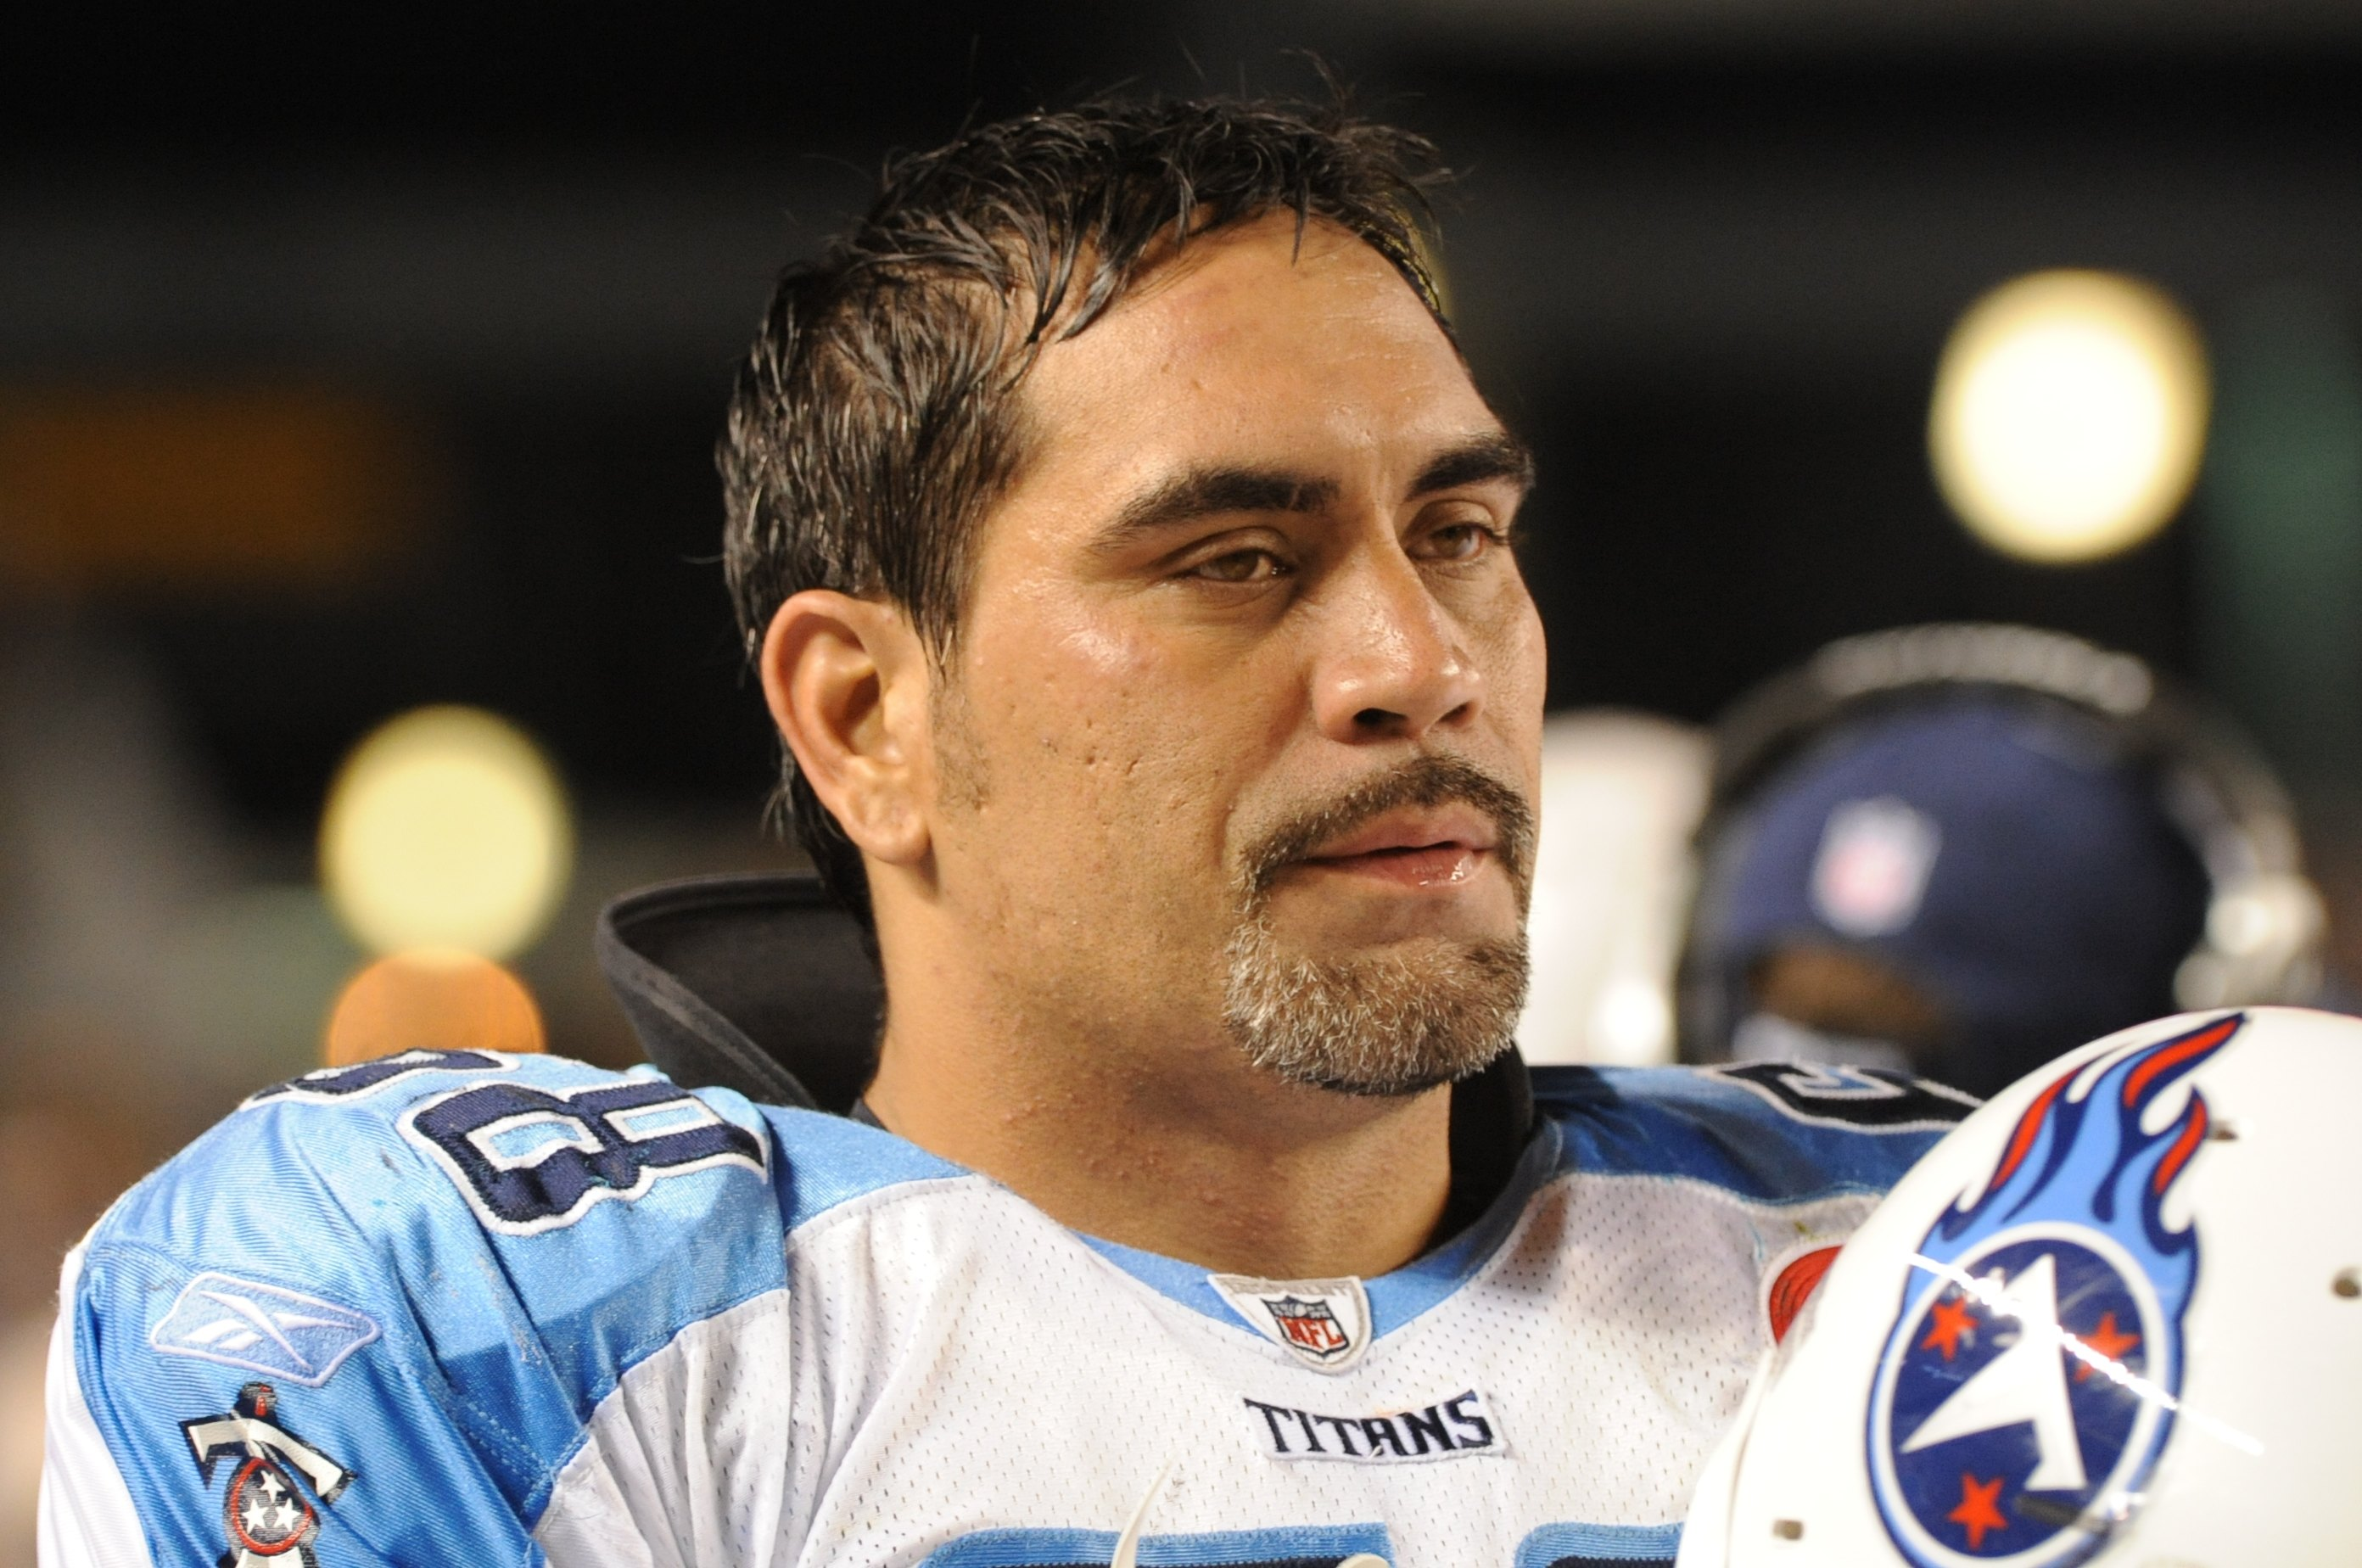 Kevin Mawae looking on from the sideline